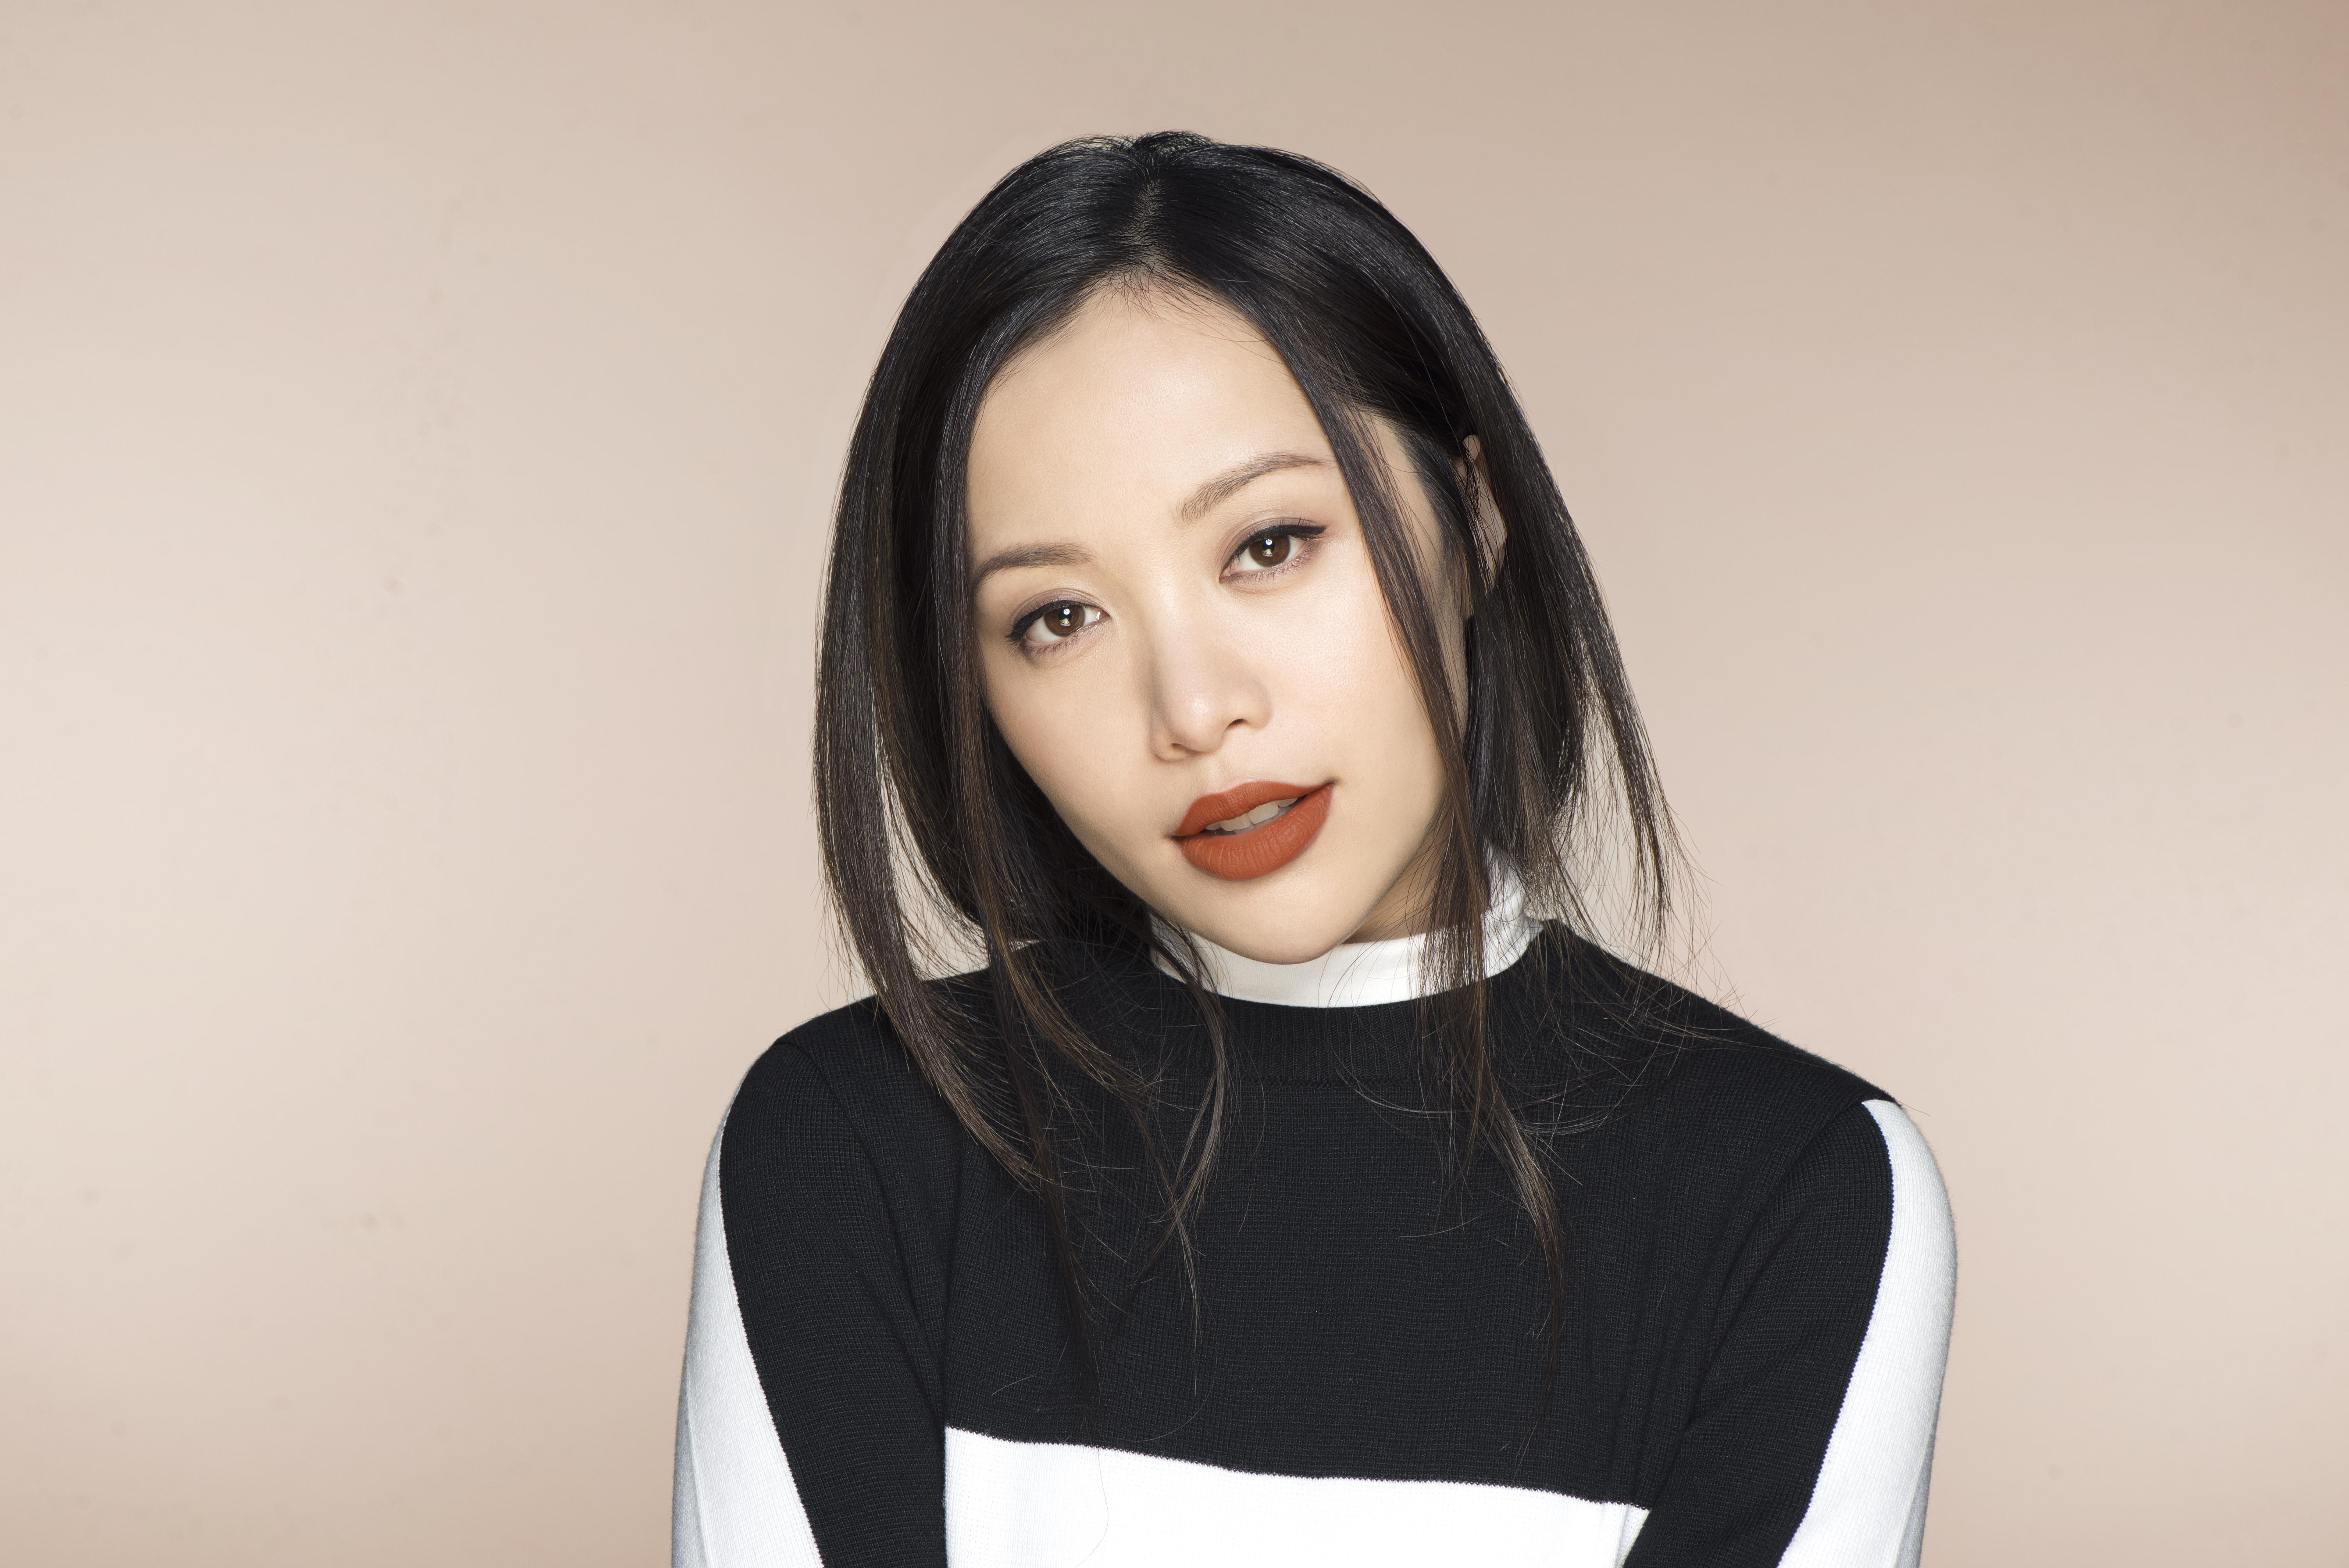 The Rebirth of YouTube Beauty Pioneer Michelle Phan